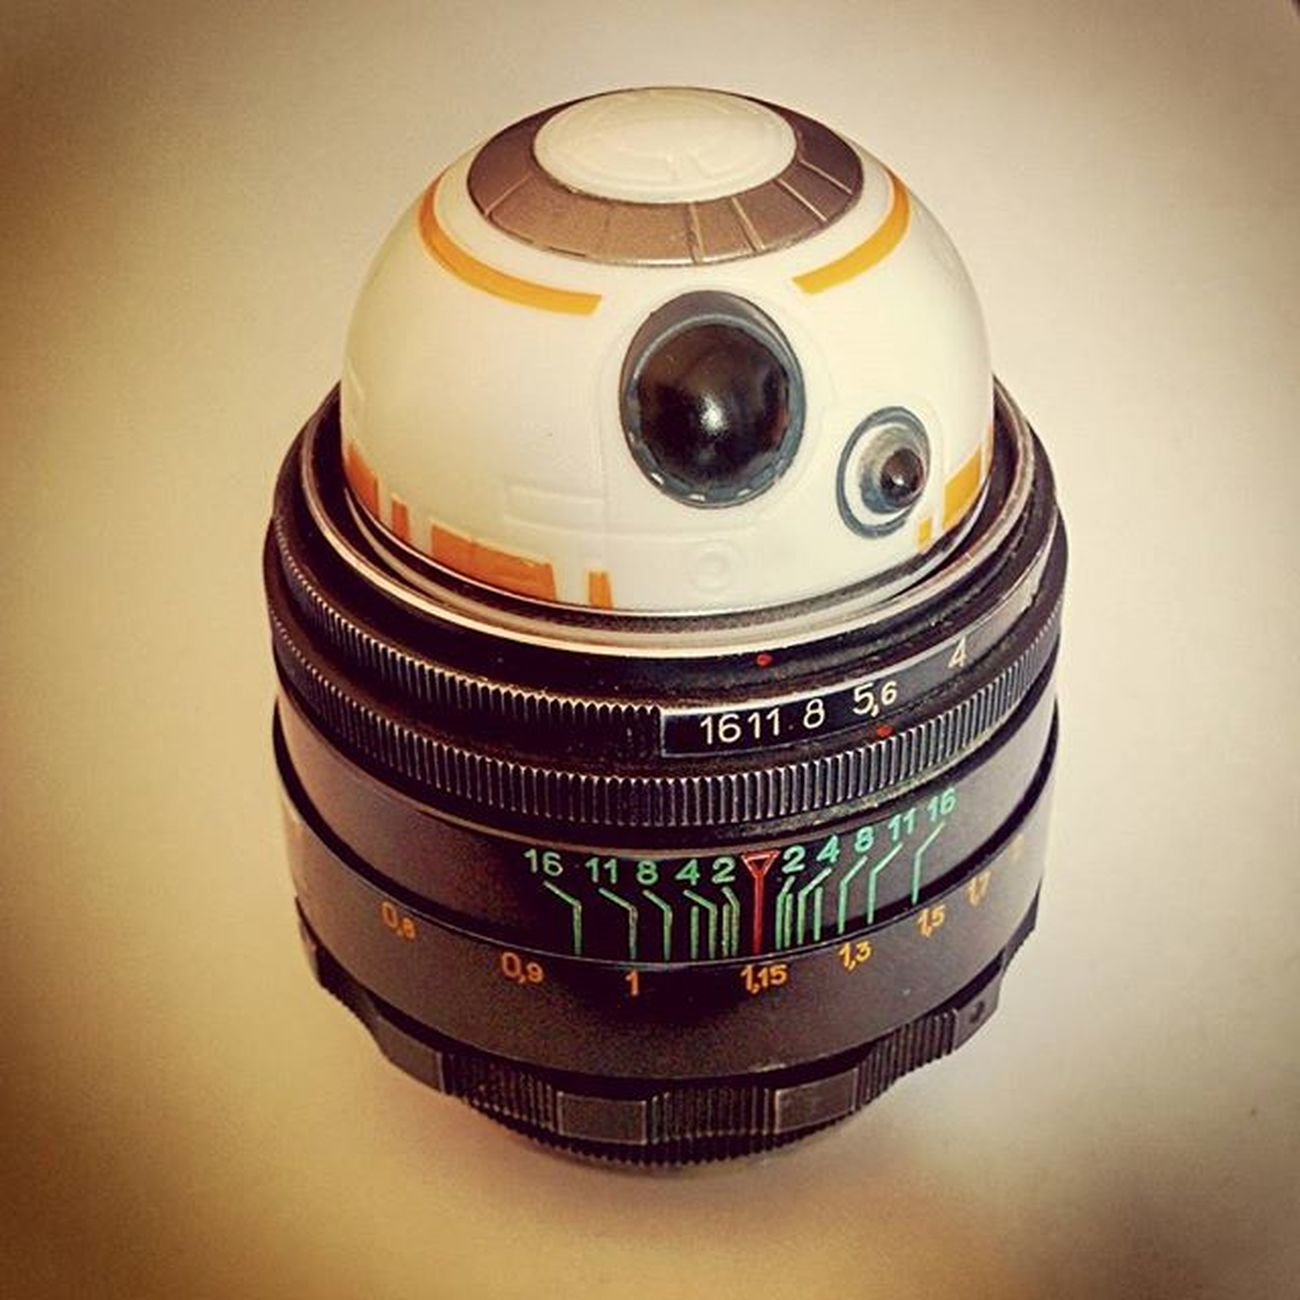 BB-Lens Macro Nexus5 Bb8 Starwars Star Wars Funart Lens Episode7 MOVIE Droid